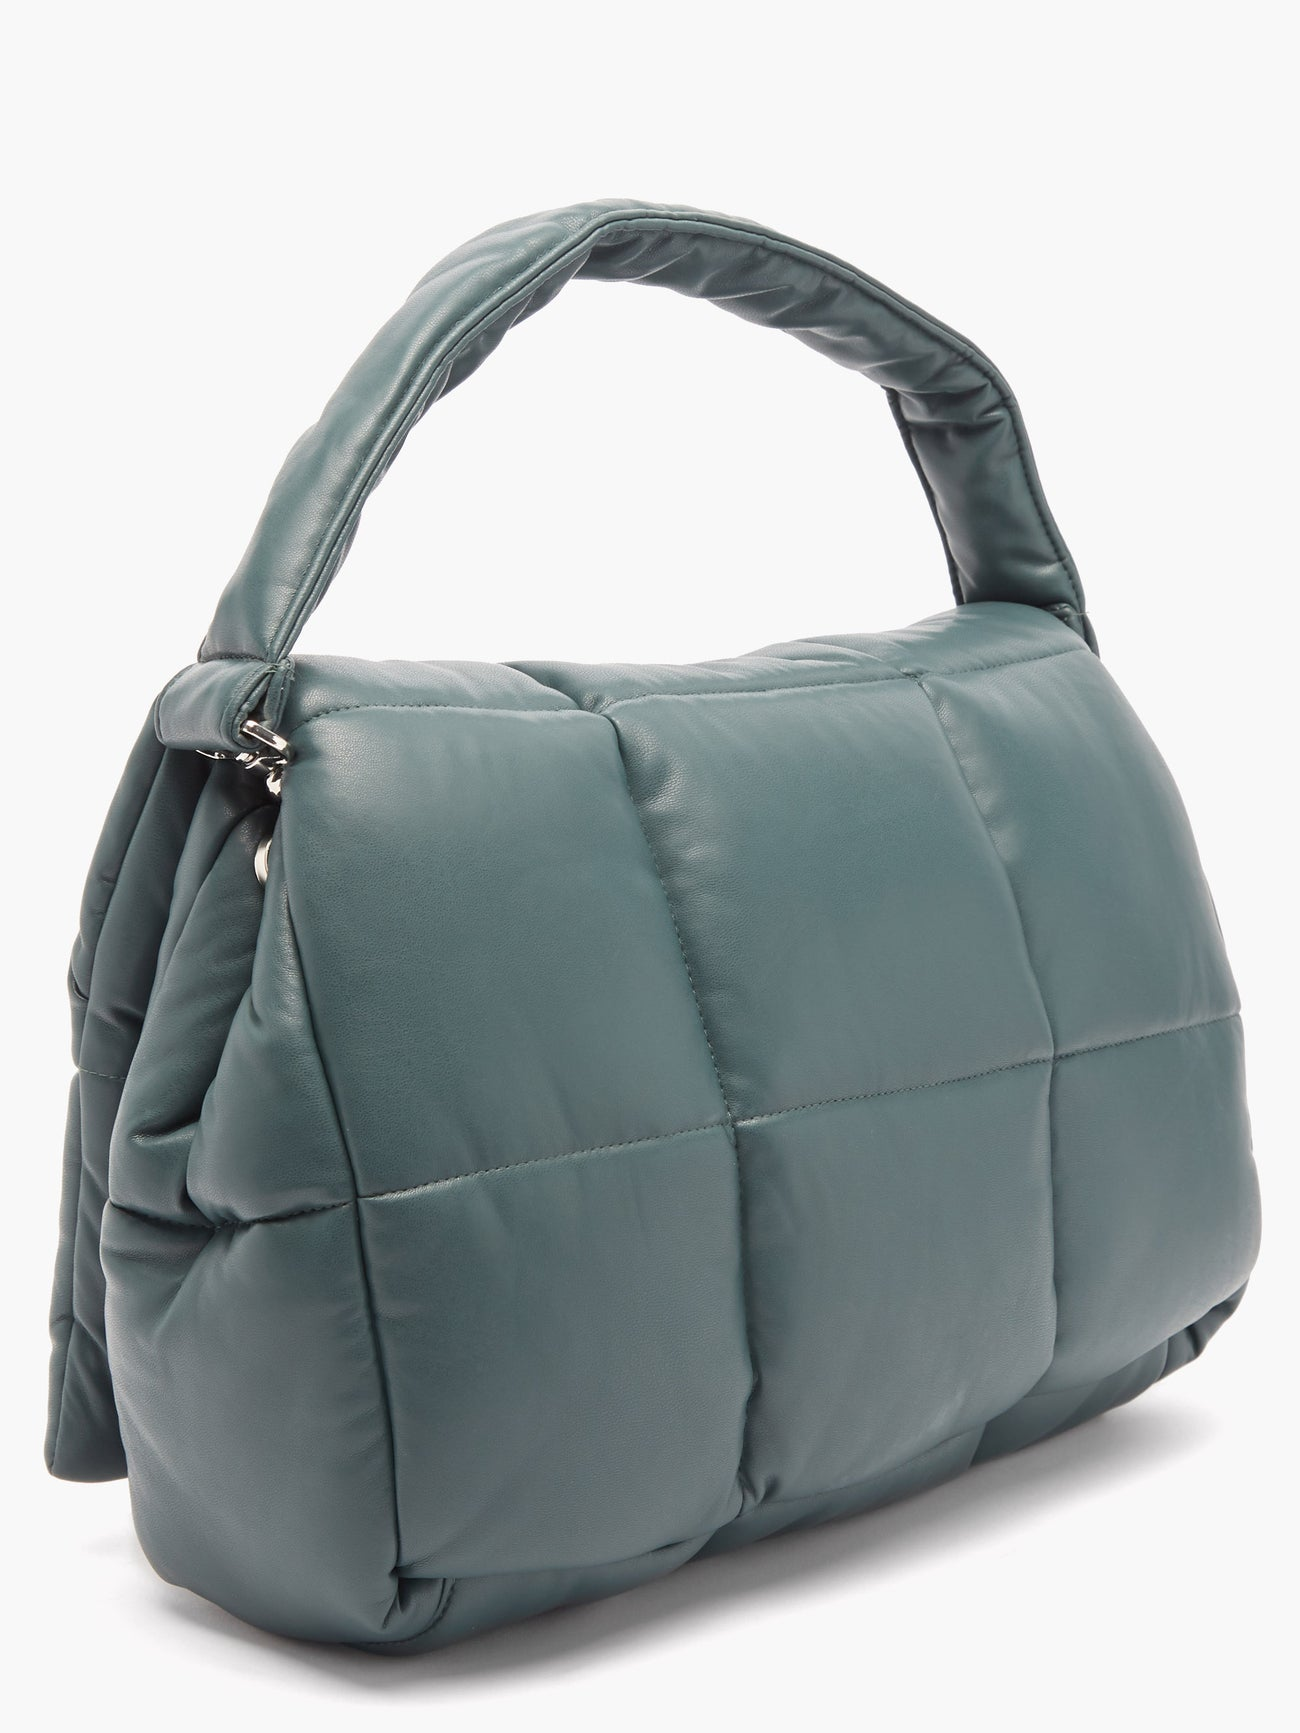 STAND STUDIO Wanda quilted faux-leather shoulder bag $375